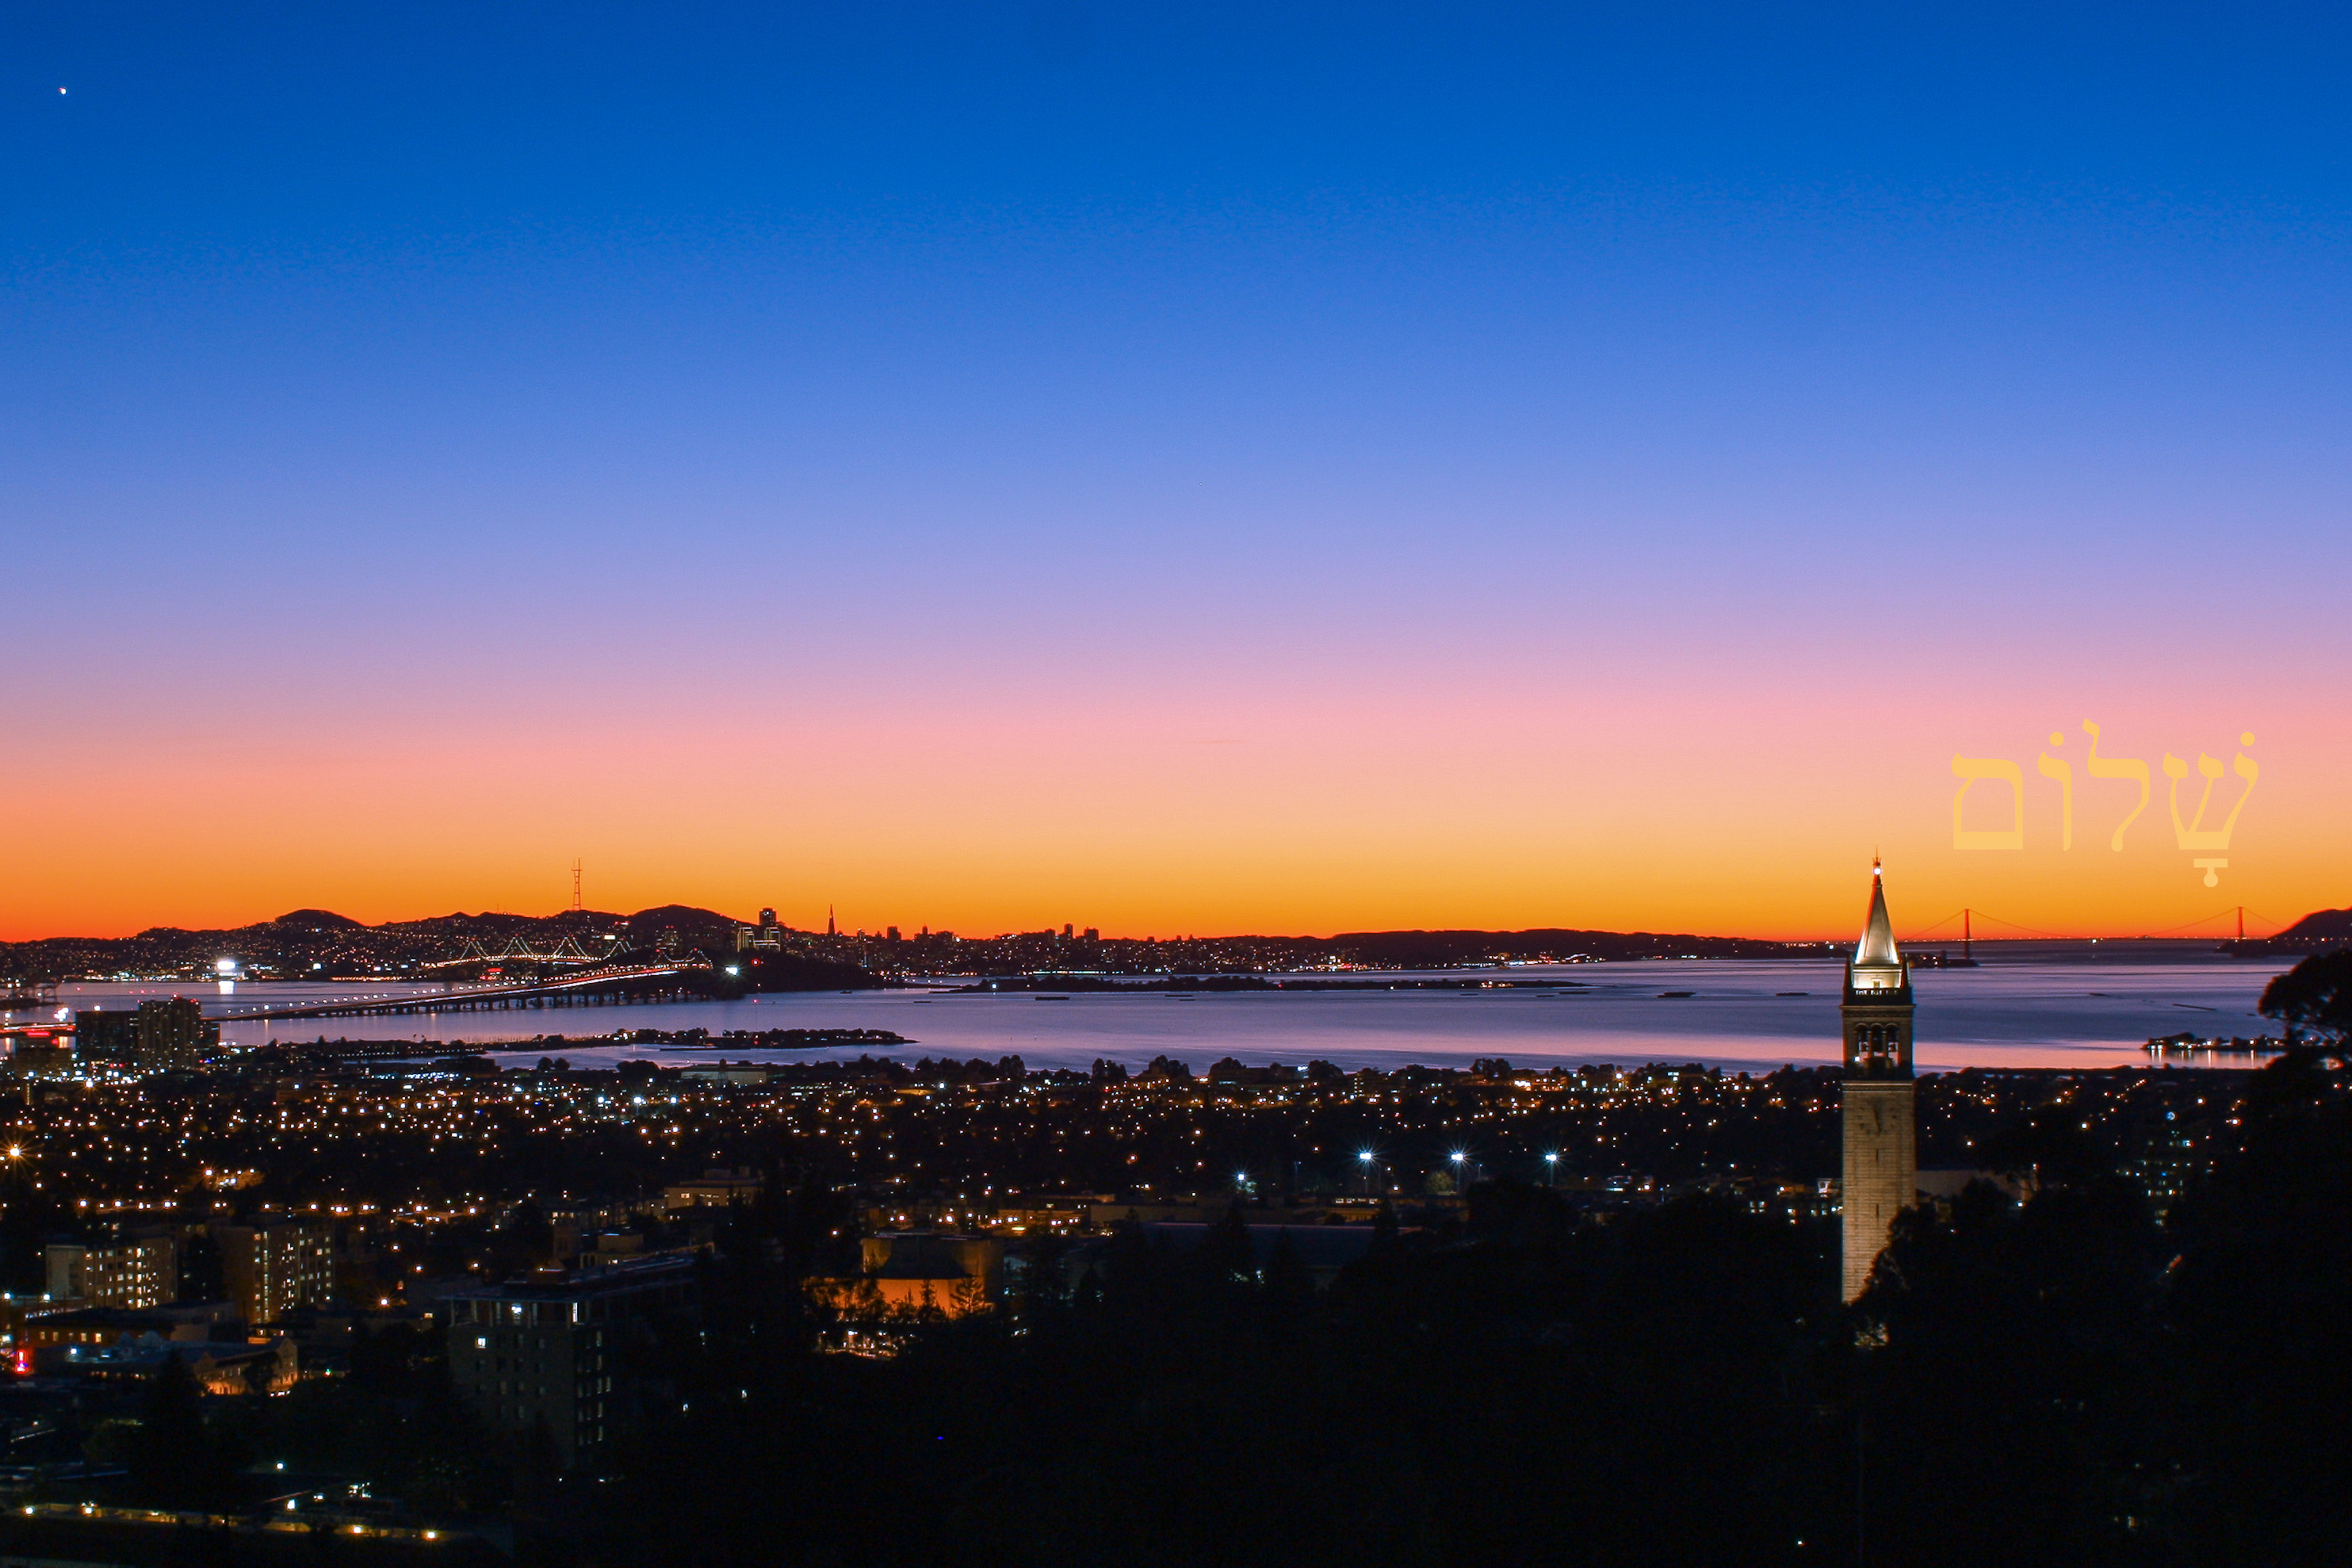 A view of the San Francisco Bay from Berkeley Hills during sunset